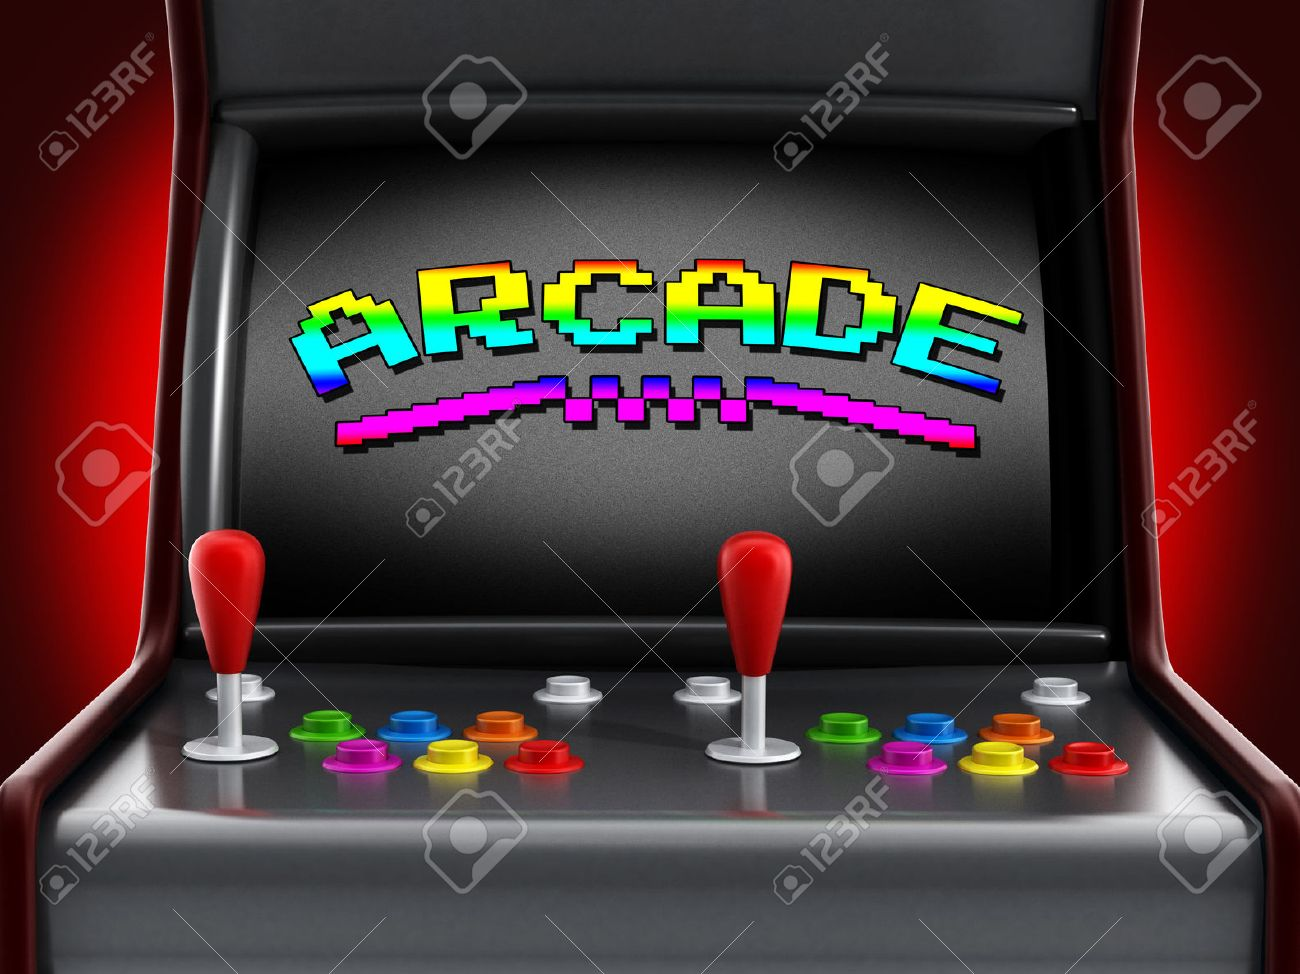 Vintage arcade machine with two joysticks and push buttons for people. Stock Photo - 50824143